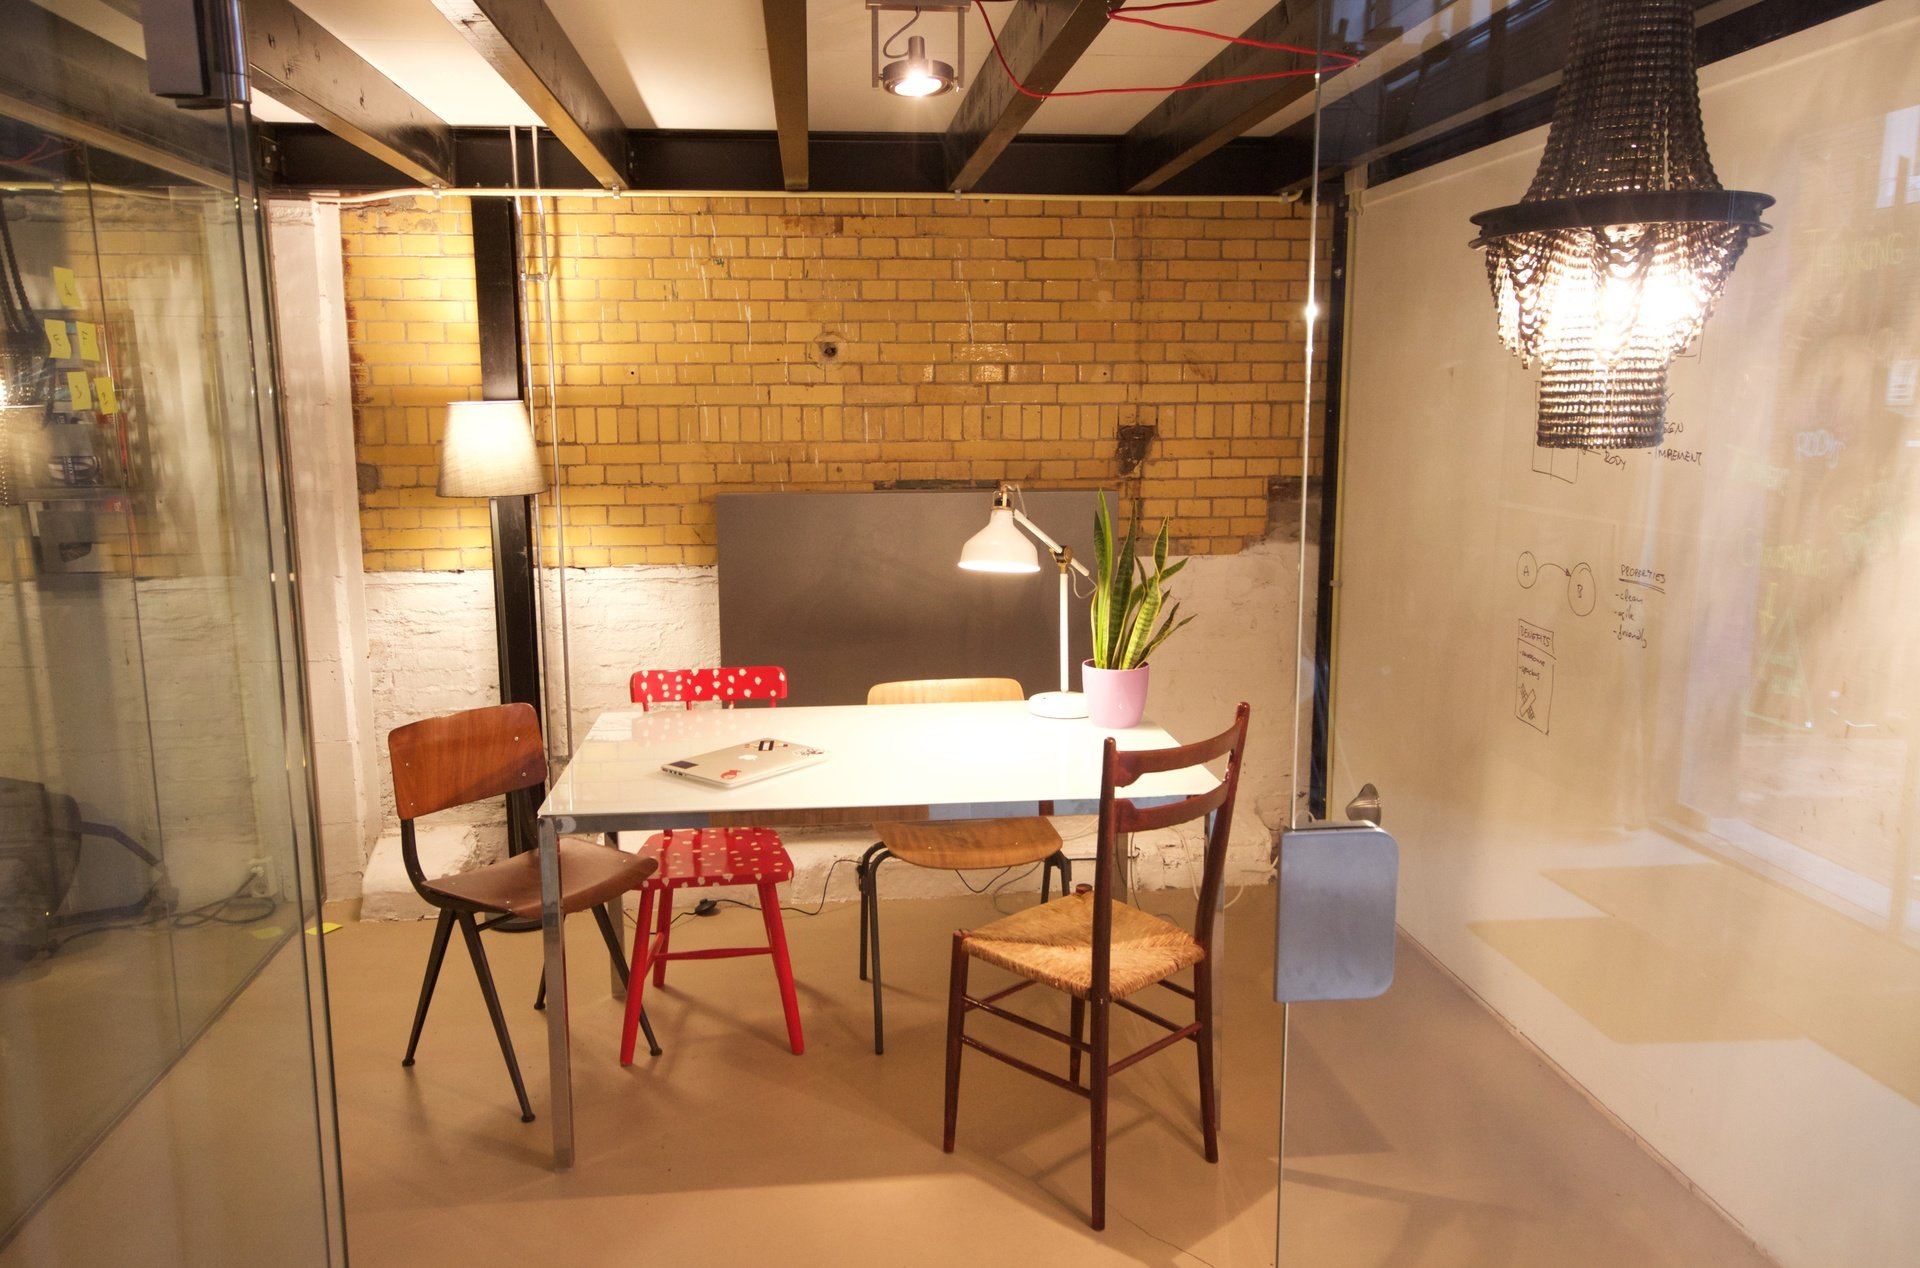 Amsterdam conference rooms Salle de réunion The Thinking Hut - Small Meeting Room image 0